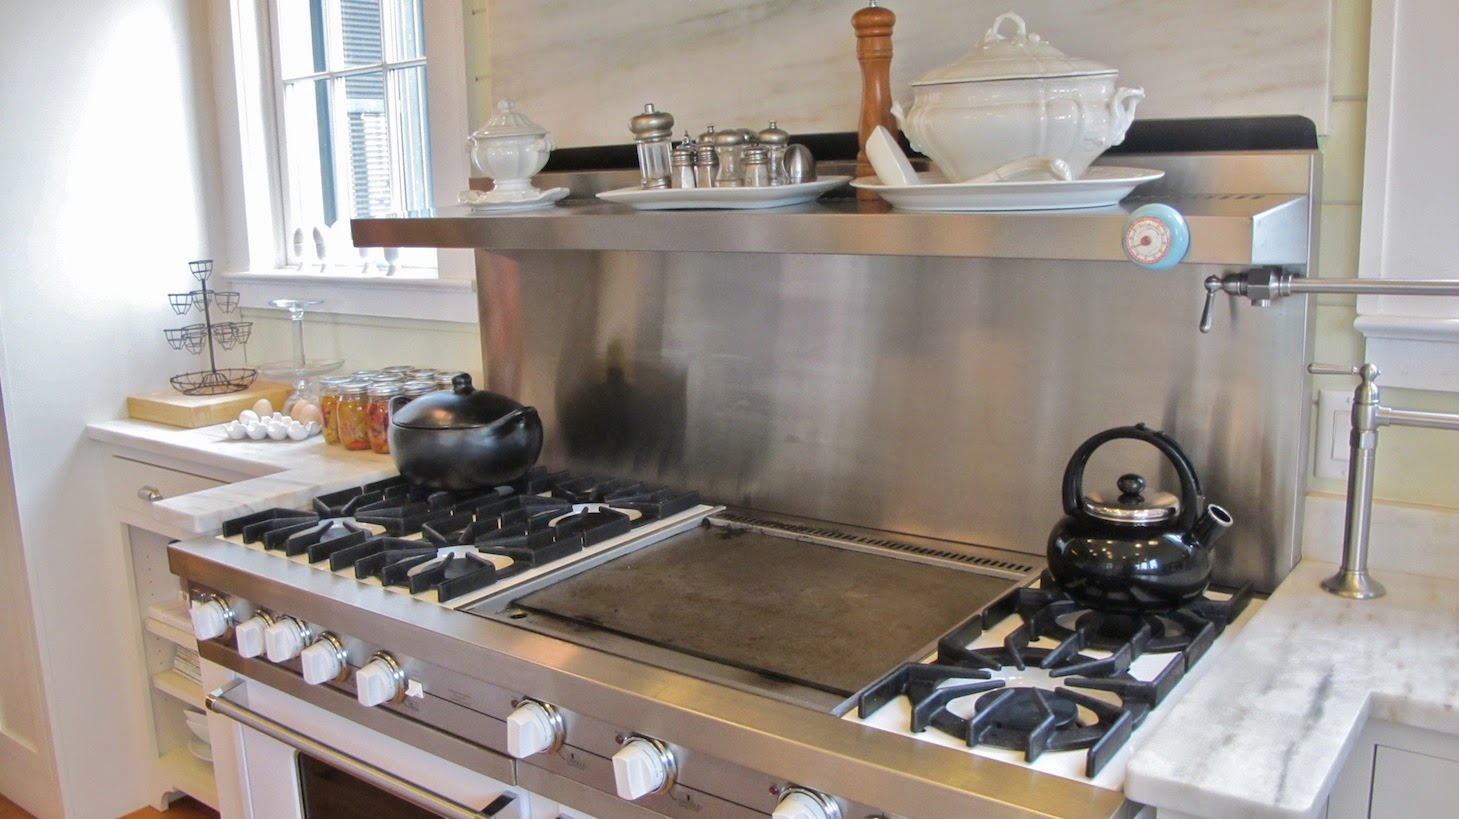 P Allen Smith Moss Mountain Garden Home kitchen shot stove2 (c)nwafoodie